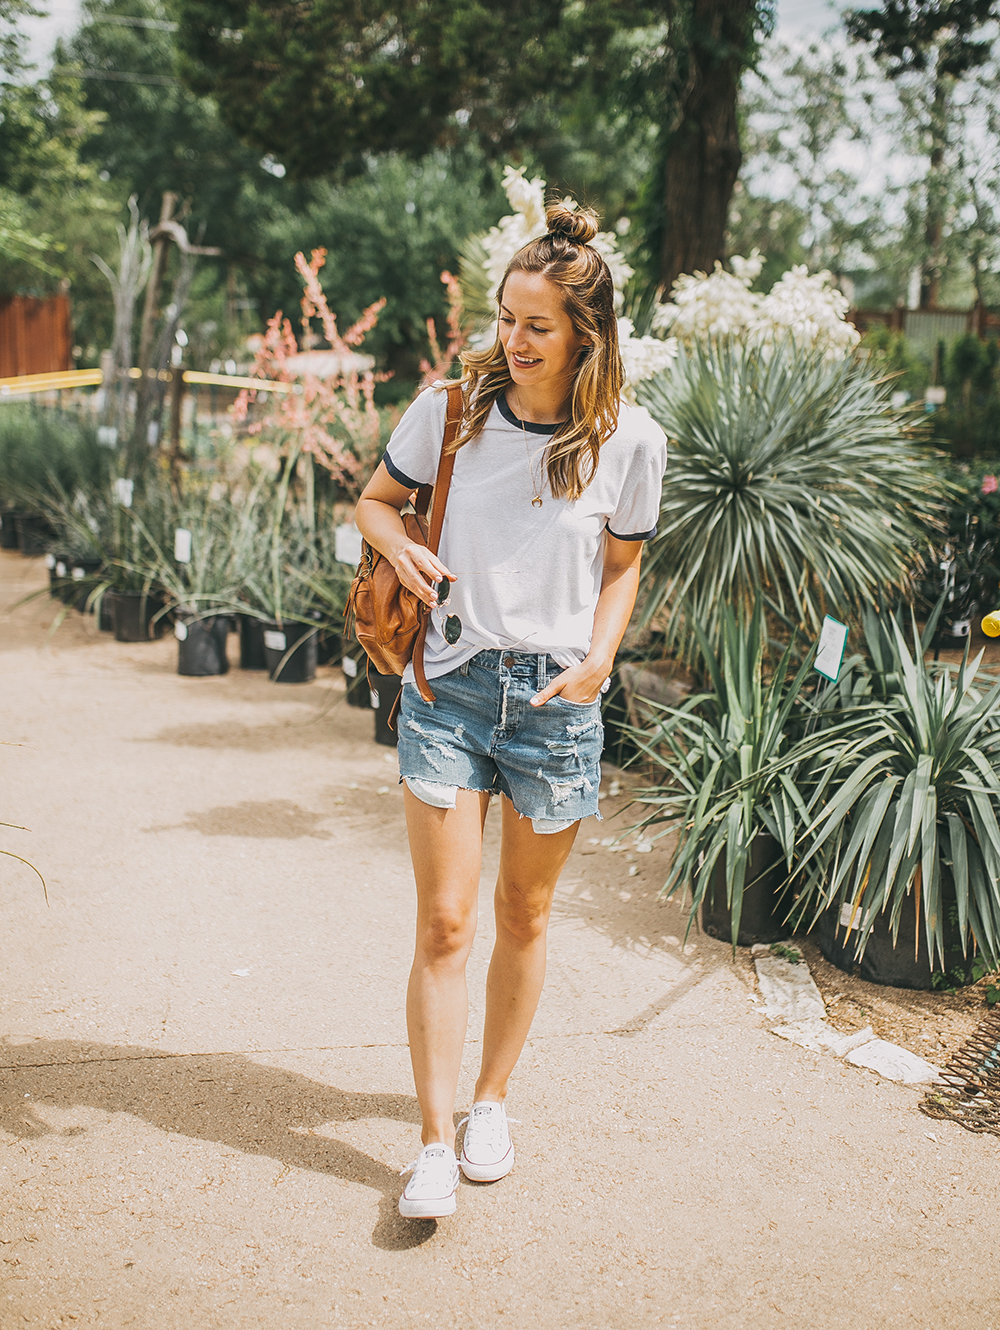 livvyland-blog-olivia-watson-austin-texas-fashion-blogger-natural-gardener-tee-boyfriend-shorts-denim-cutoffs-easy-summer-outfit-idea-treasure-bond-nordstrom-12